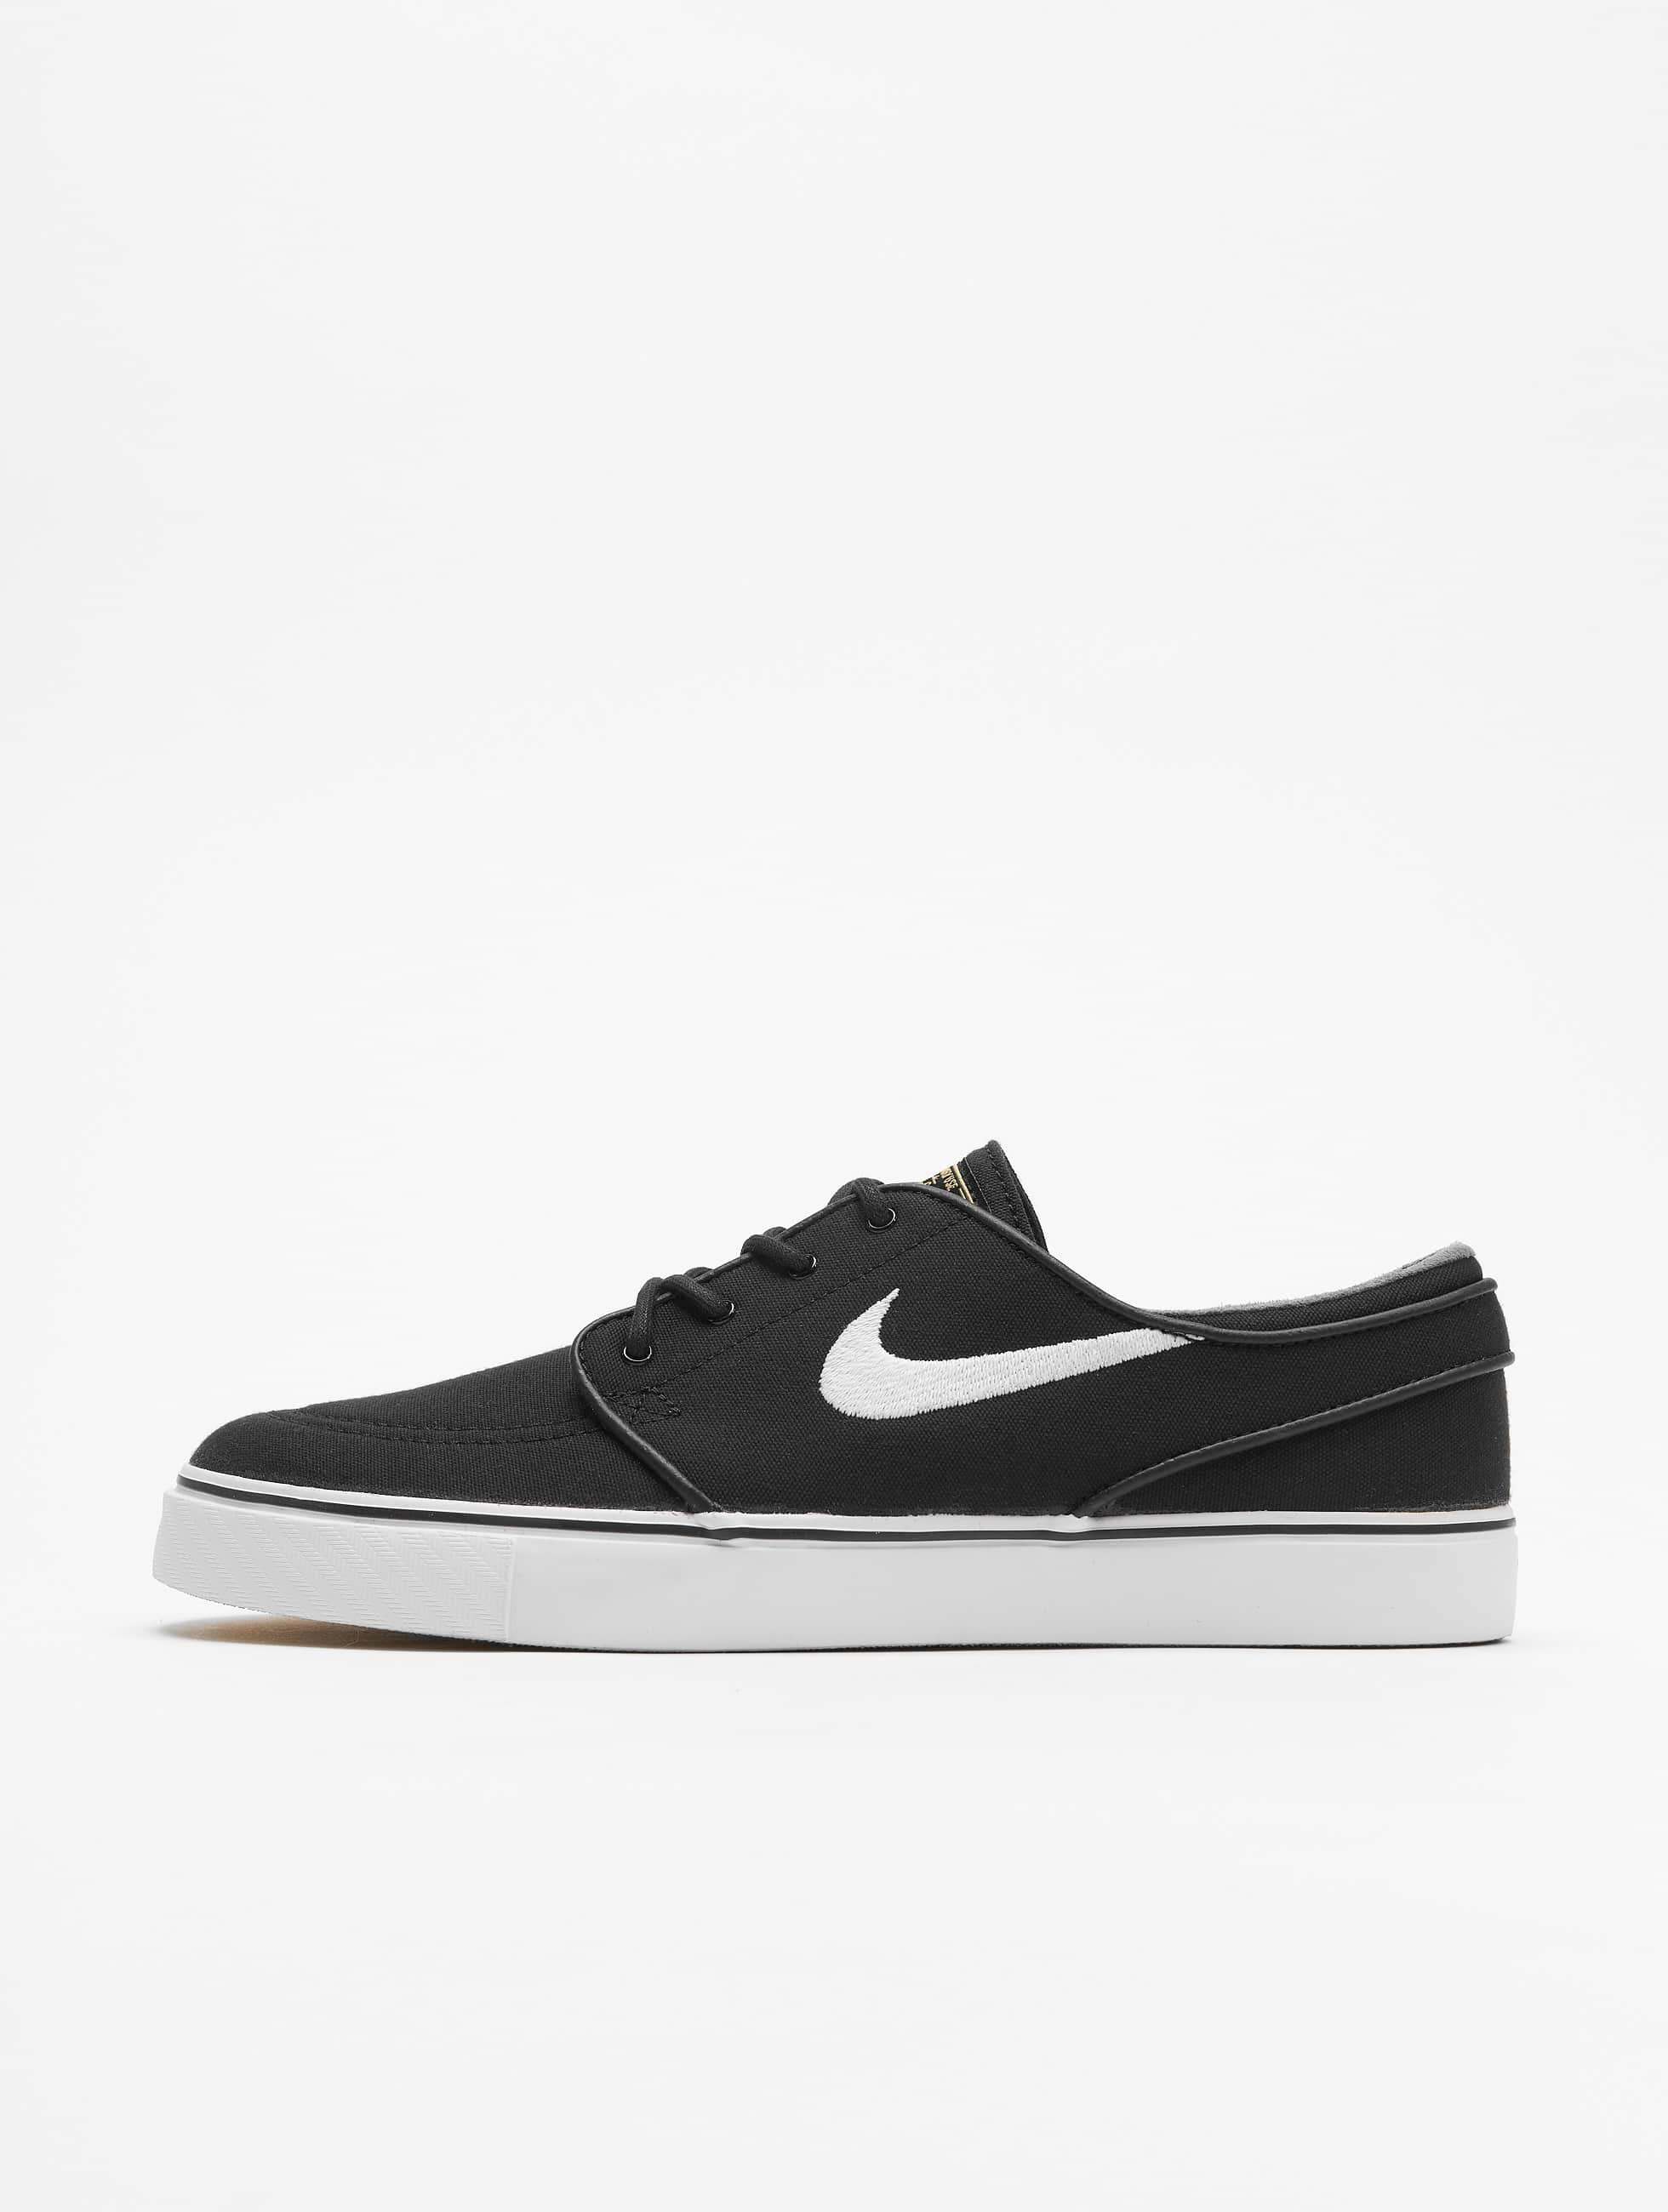 nike sb herren sneaker zoom stefan janoski in schwarz 173351. Black Bedroom Furniture Sets. Home Design Ideas